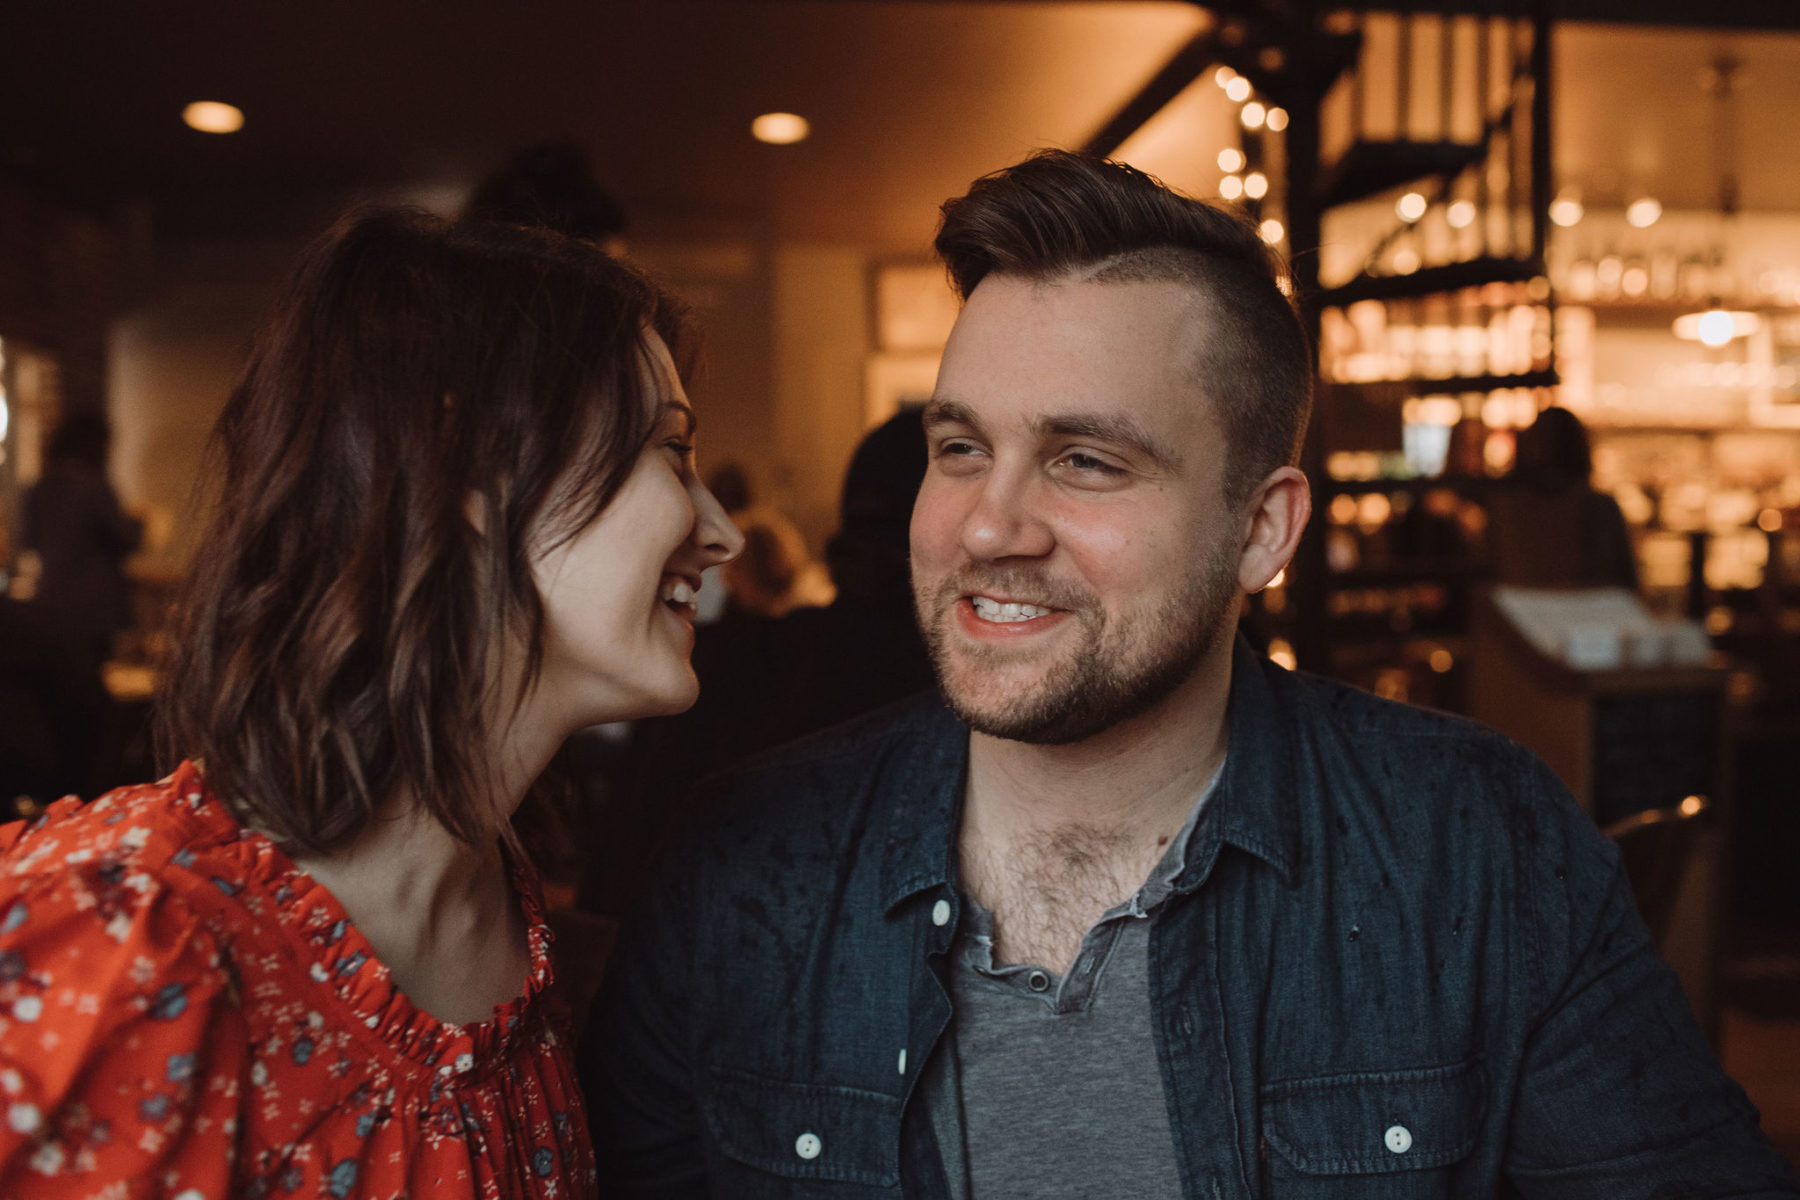 Frothy Monkey coffee shop engagement session captured by Fancy Pants Weddings Photography. See more engagement session ideas on Nashville Bride Guide!